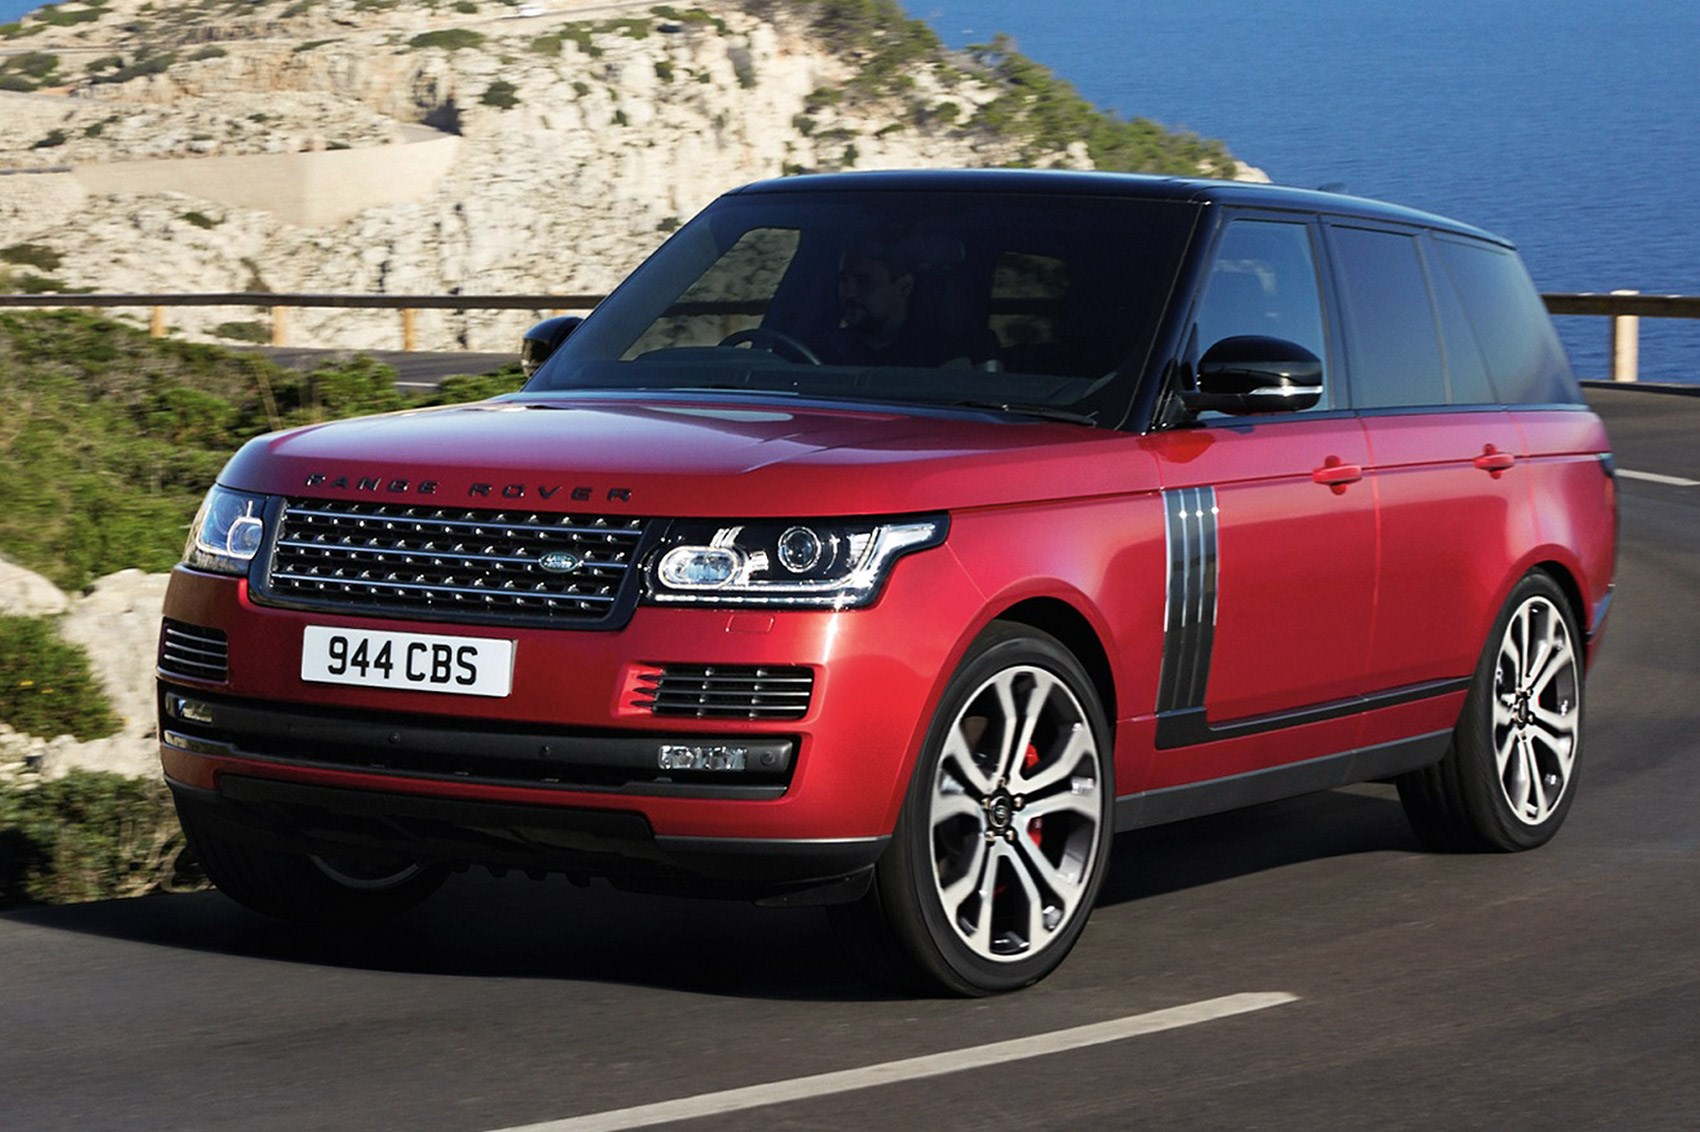 Range Rover 2019 adds new six-cylinder petrol engine - Car News   CarsGuide